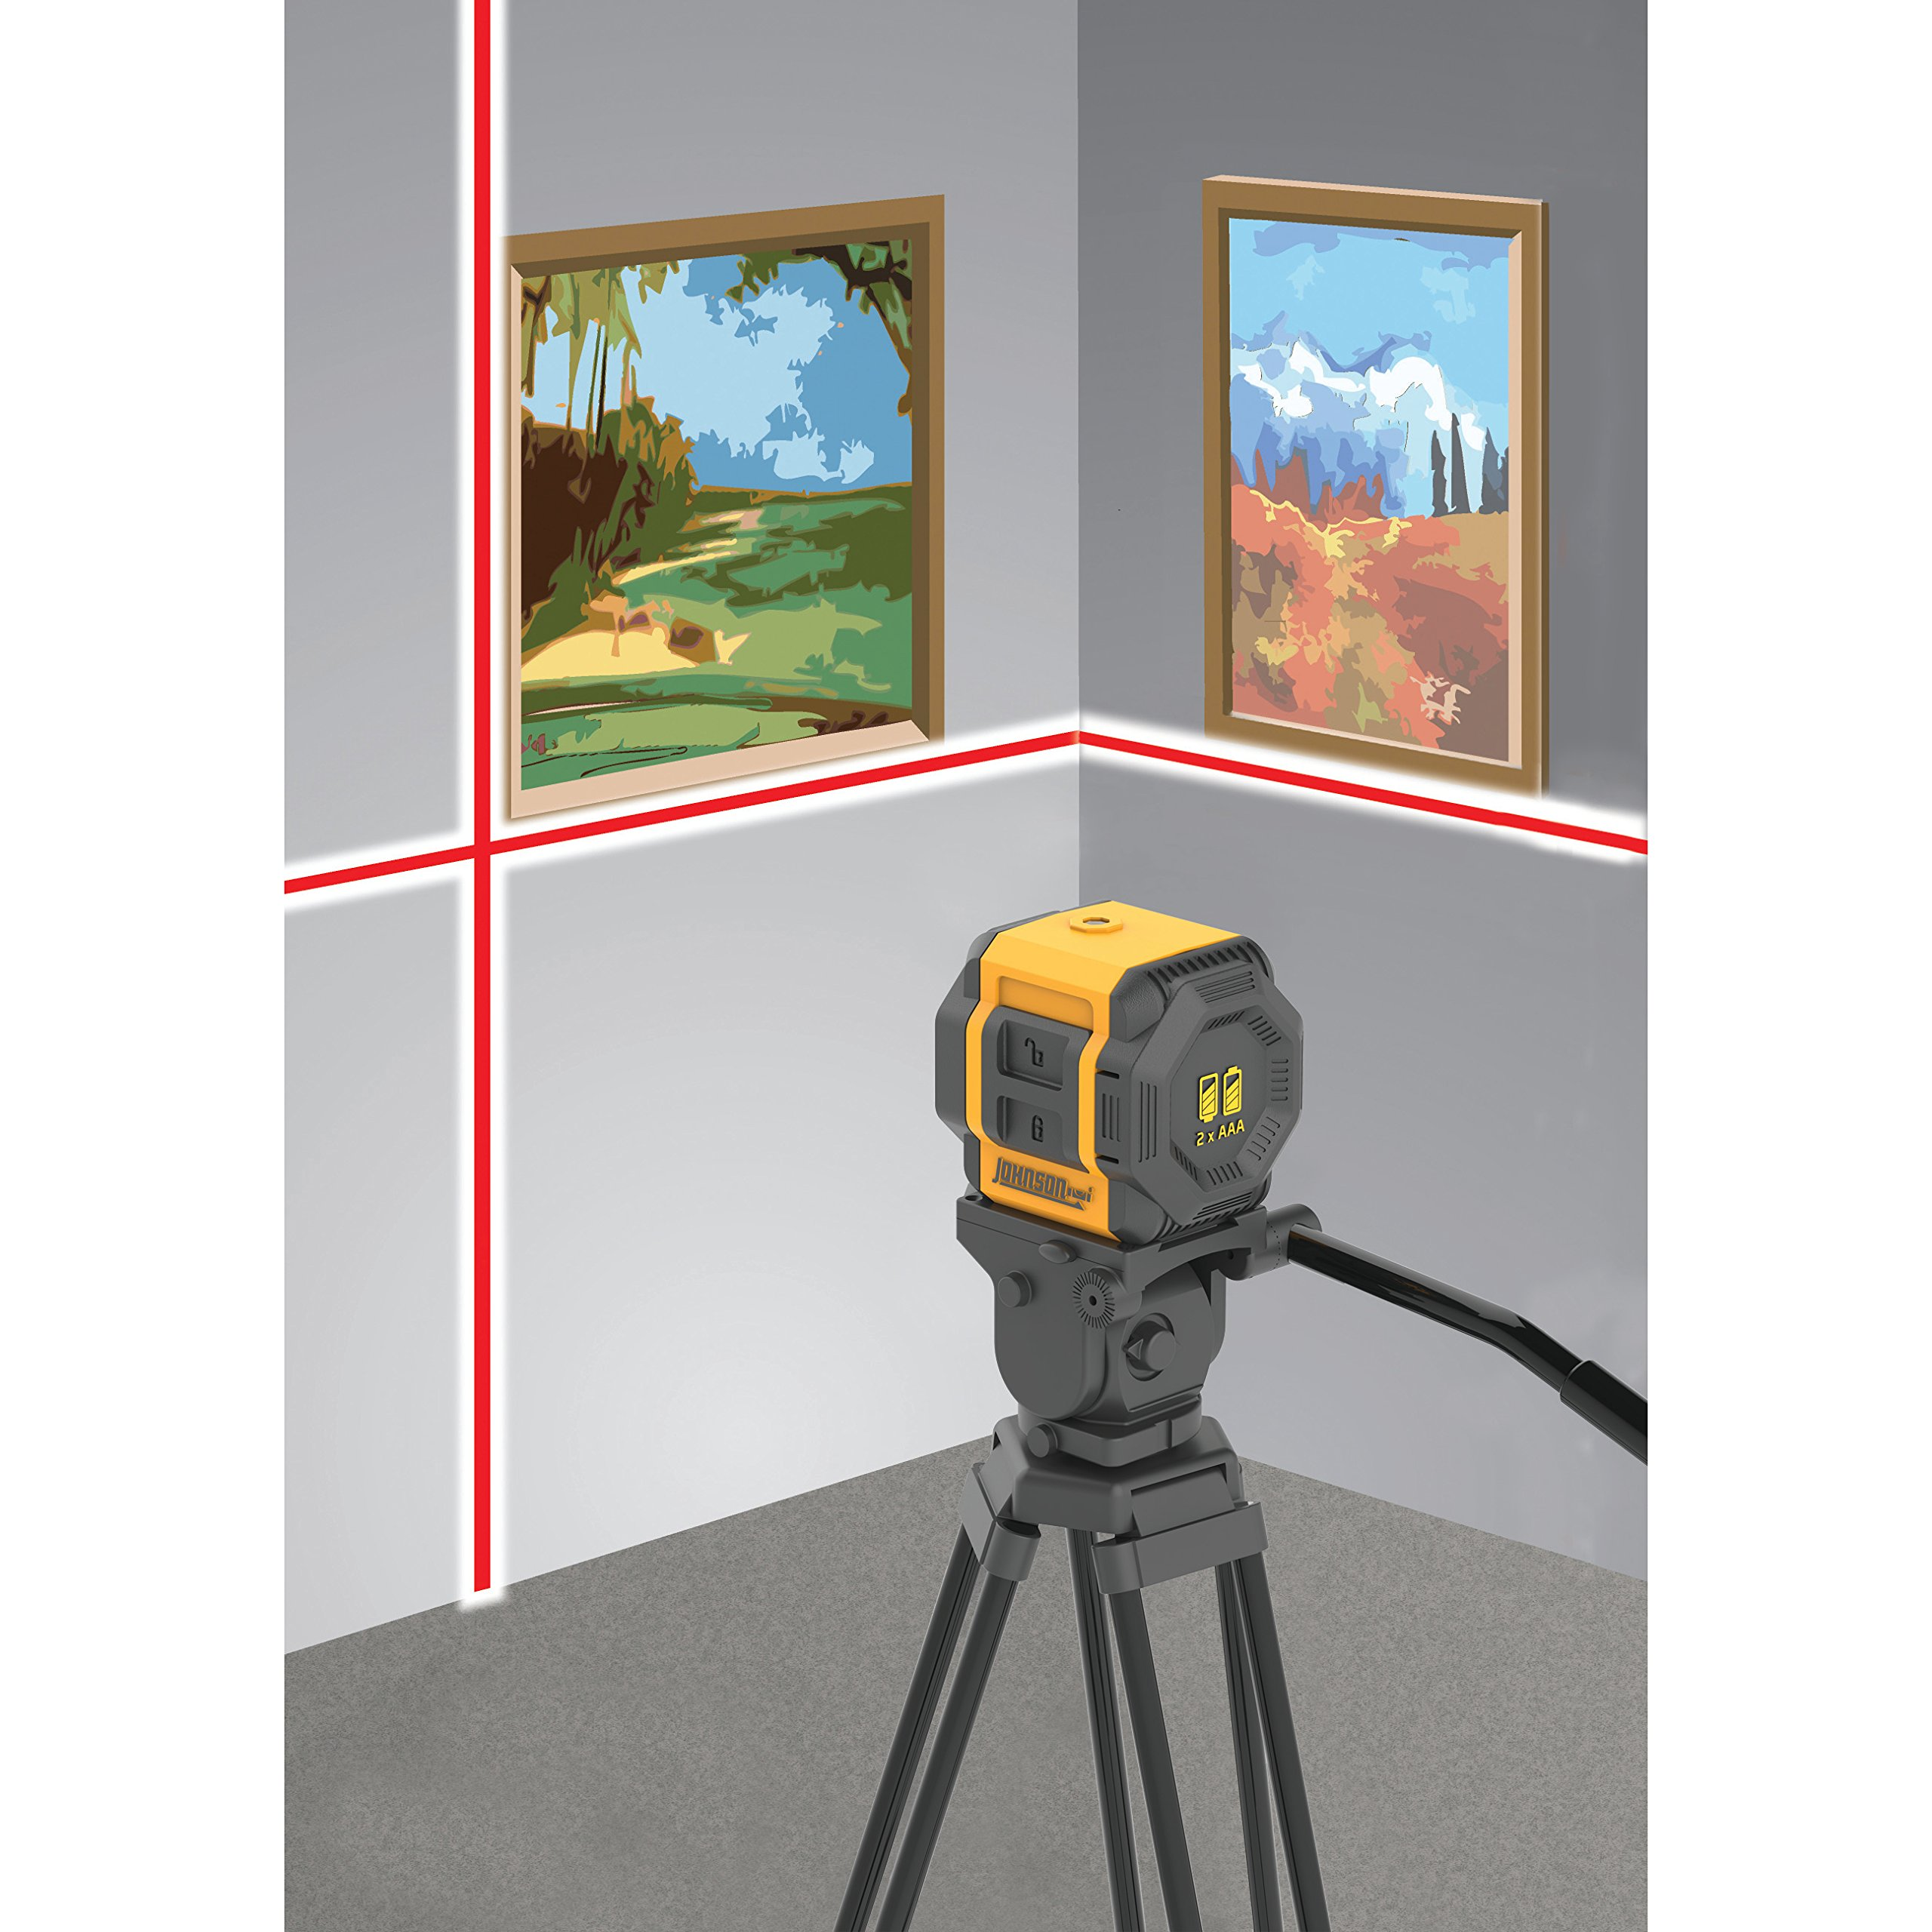 Johnson Level & Tool 40-6603 Self-Leveling Cross-Line Laser Level with Plumb and Level Layout Lines by Johnson Level & Tool (Image #5)